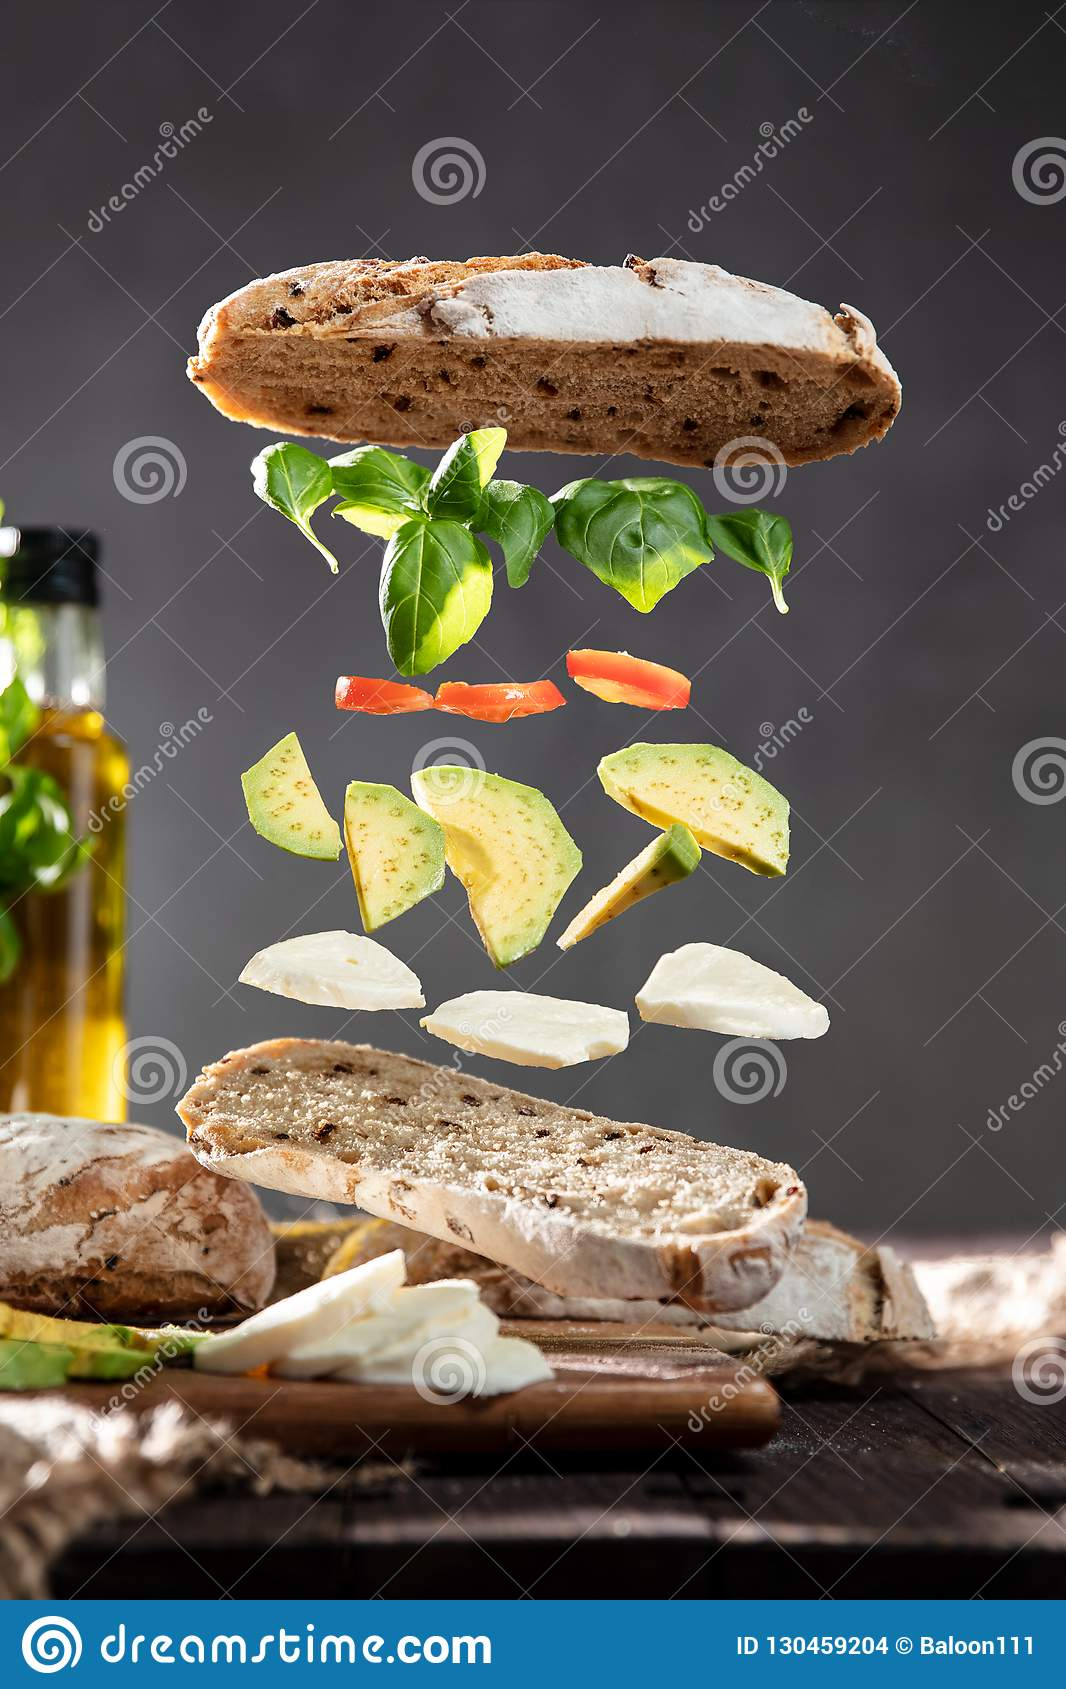 Isolated ingredients for a sandwich floating in air